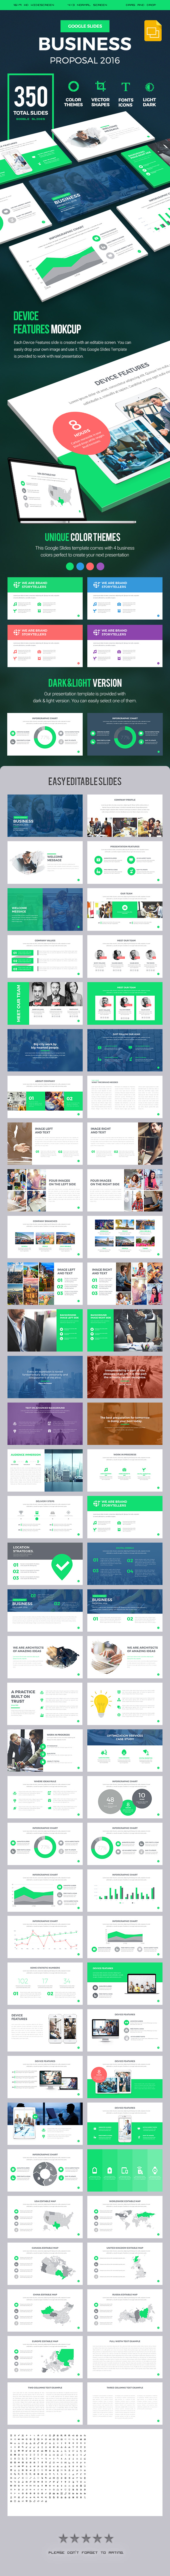 Business Proposal 2016 Google Slides Presentation Template - Google Slides Presentation Templates